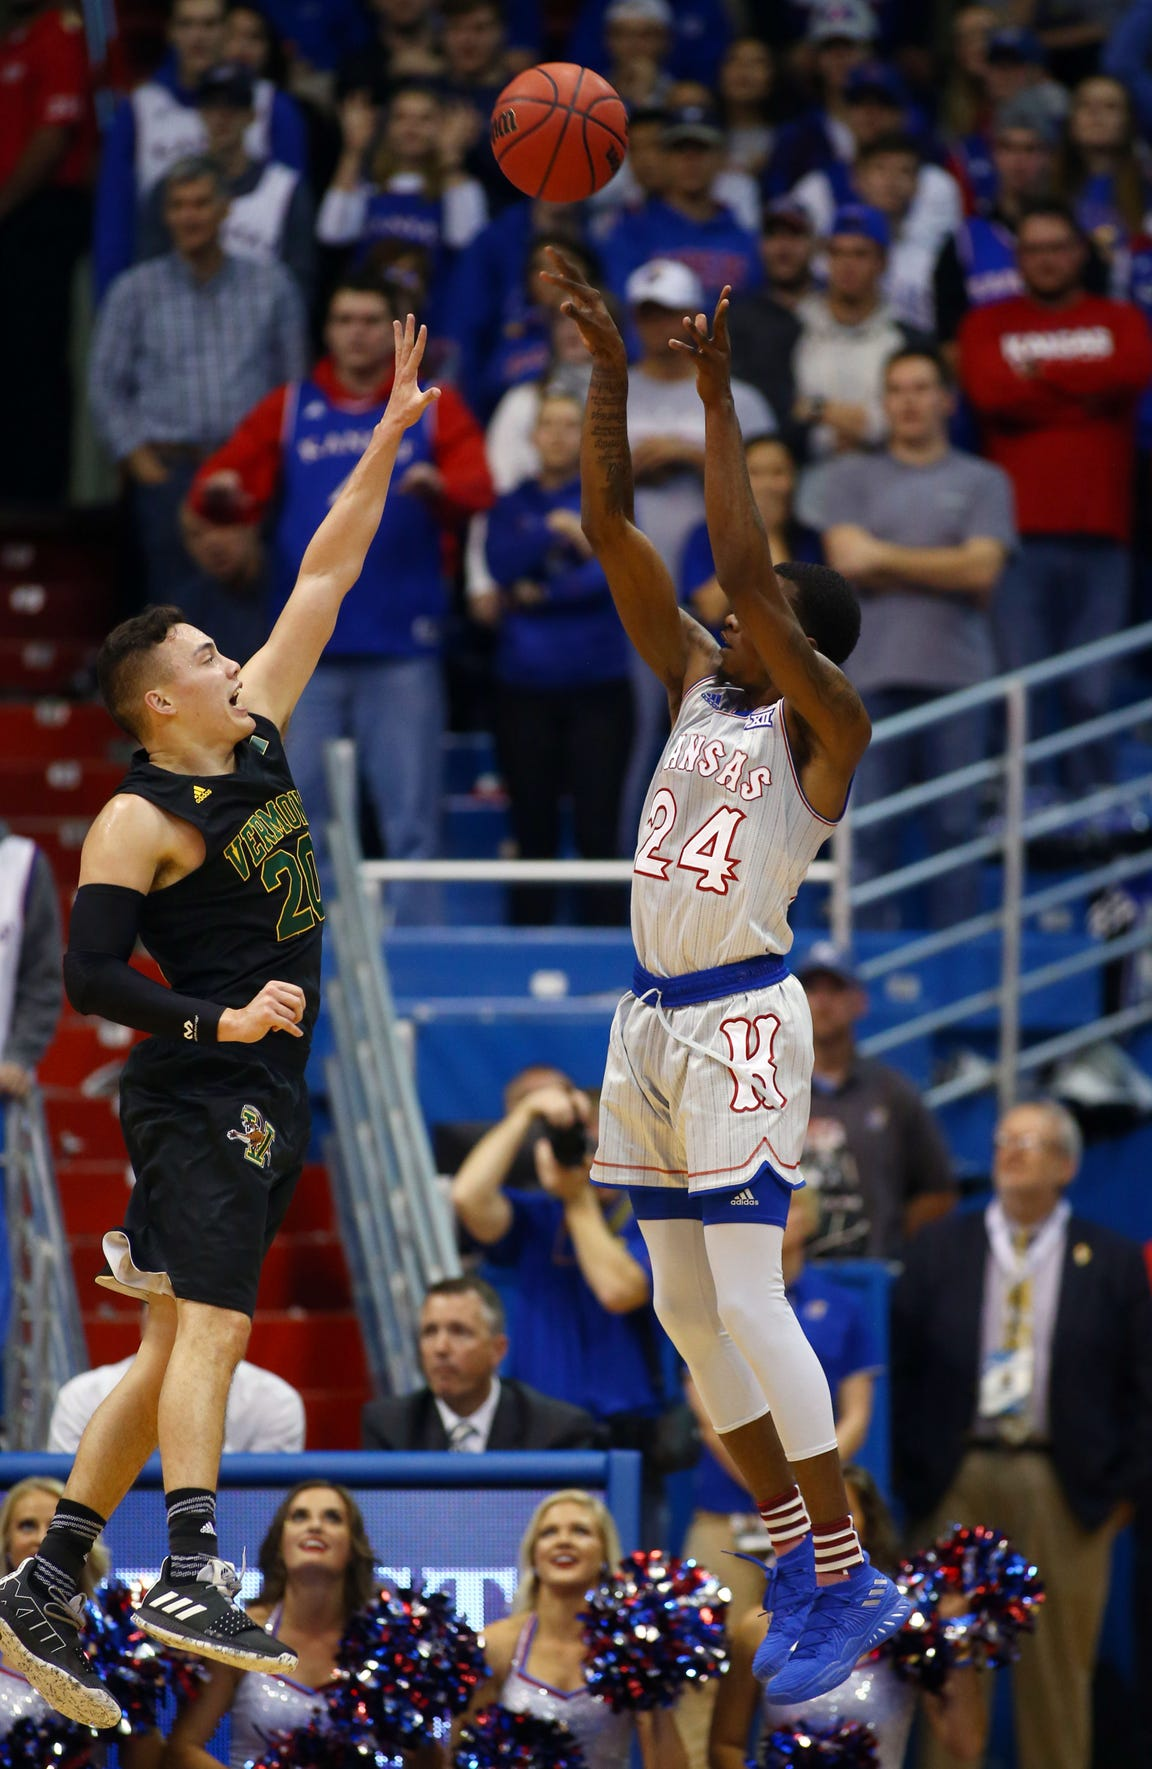 Nov 12, 2018; Lawrence, KS, USA; Kansas Jayhawks guard Lagerald Vick (24) shoots over Vermont Catamounts guard Ernie Duncan (20) in the first half at Allen Fieldhouse.